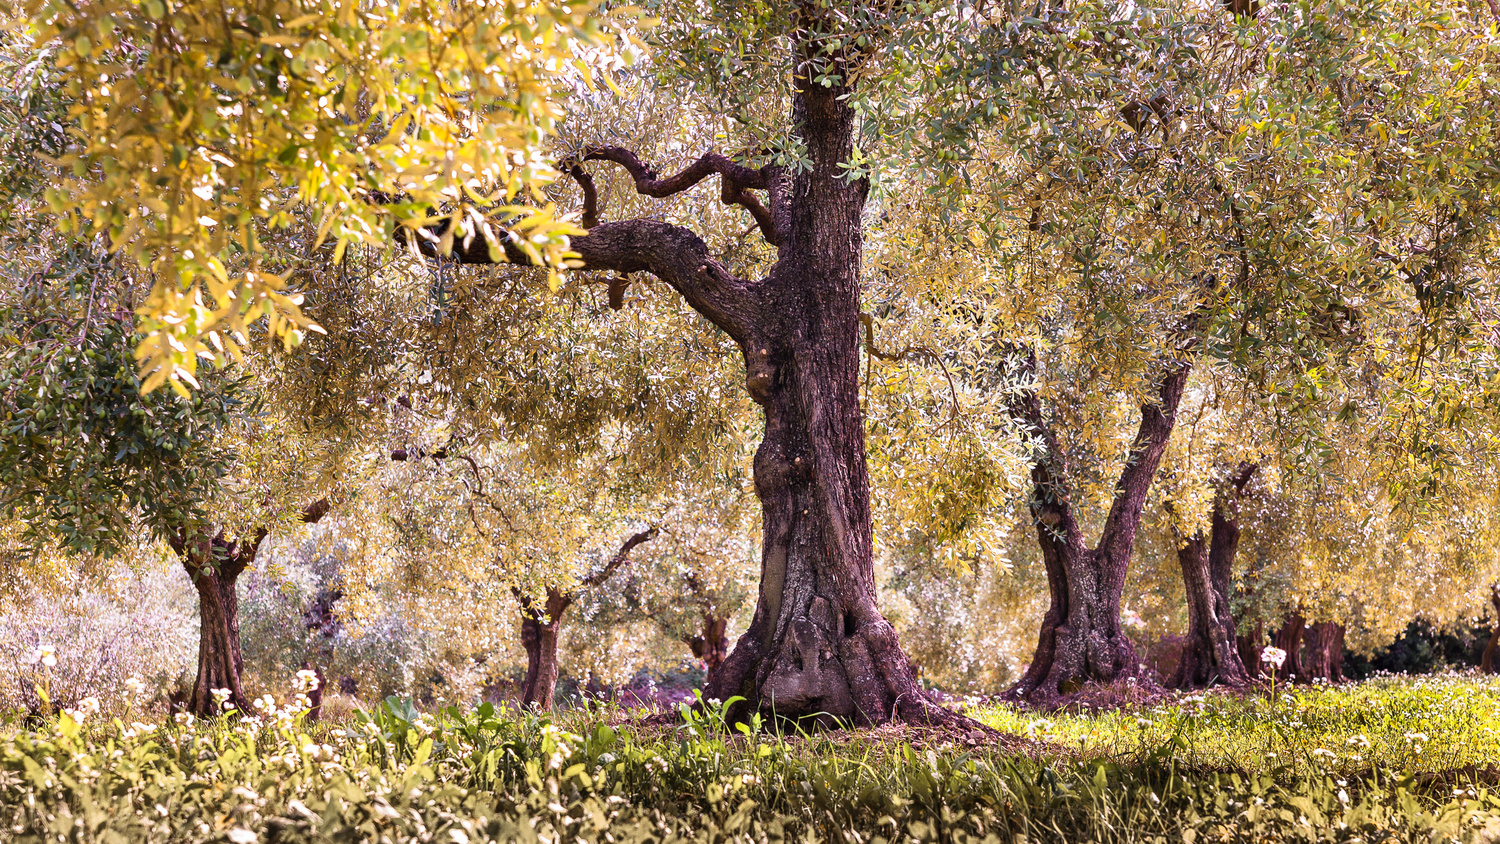 Forest of olive trees in automn (France) by david huguet